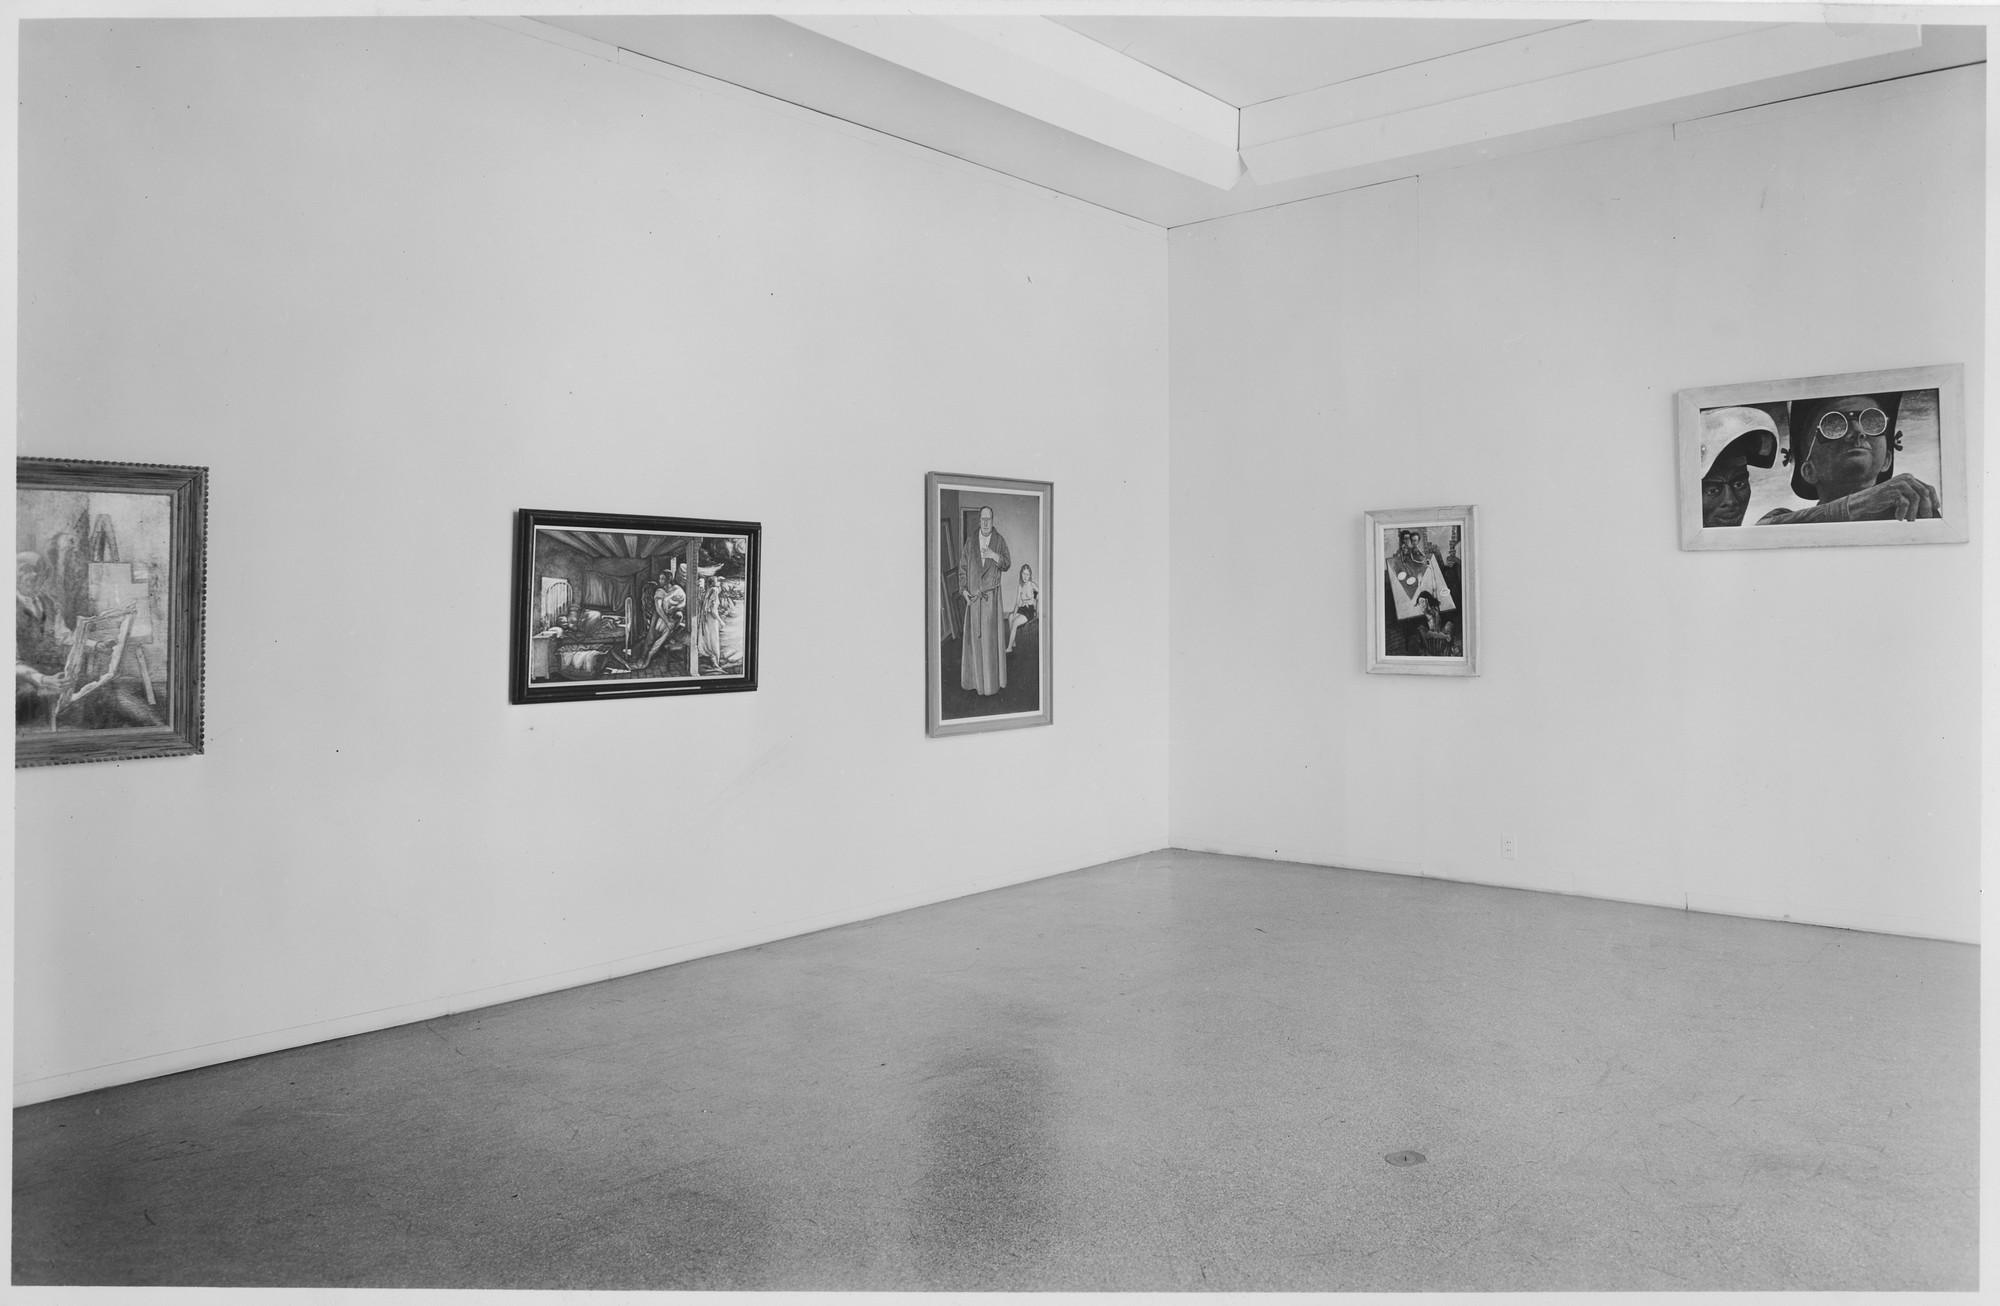 "Installation view of the exhibition, ""Recent Acquisitions."" February 15, 1945–March 18, 1945. Photographic Archive. The Museum of Modern Art Archives, New York. IN276.1. Photograph by Soichi Sunami."